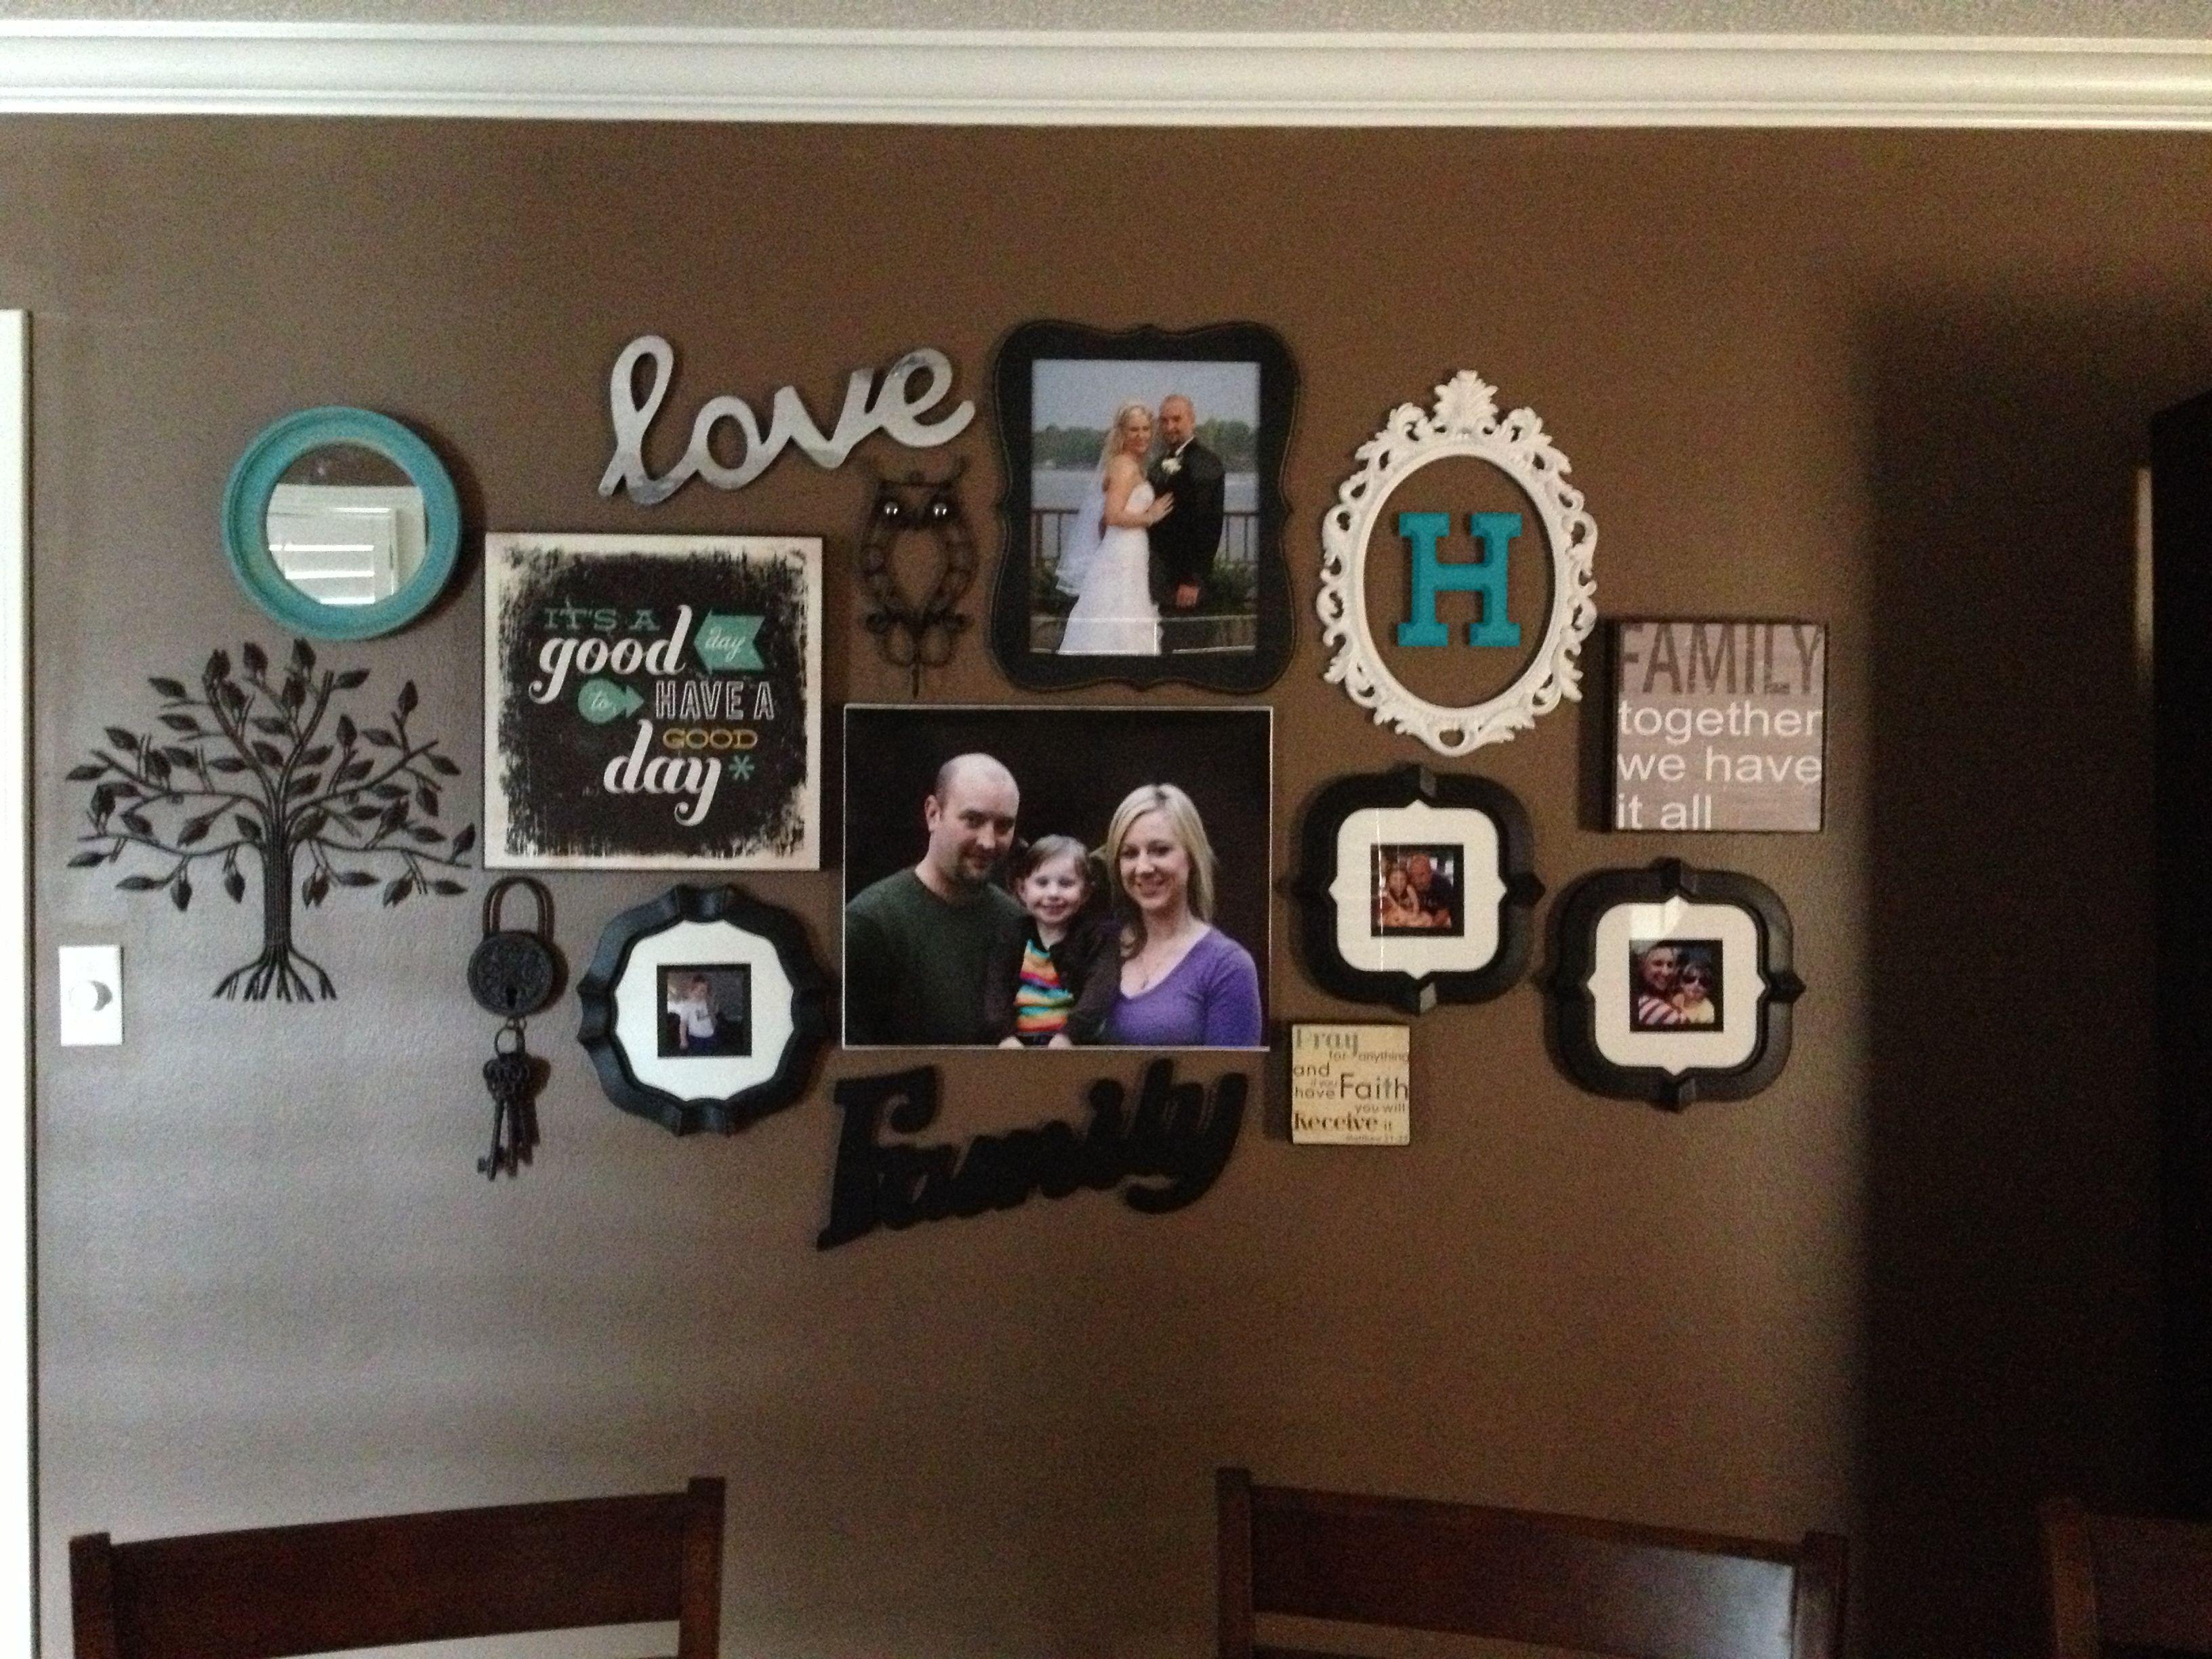 Dining room wall teal makes it pop home decor for the walls love the antique frames around wood letters love sign bright round mirror photos canvas photos and random wall dcor love it would be perfect in my amipublicfo Image collections